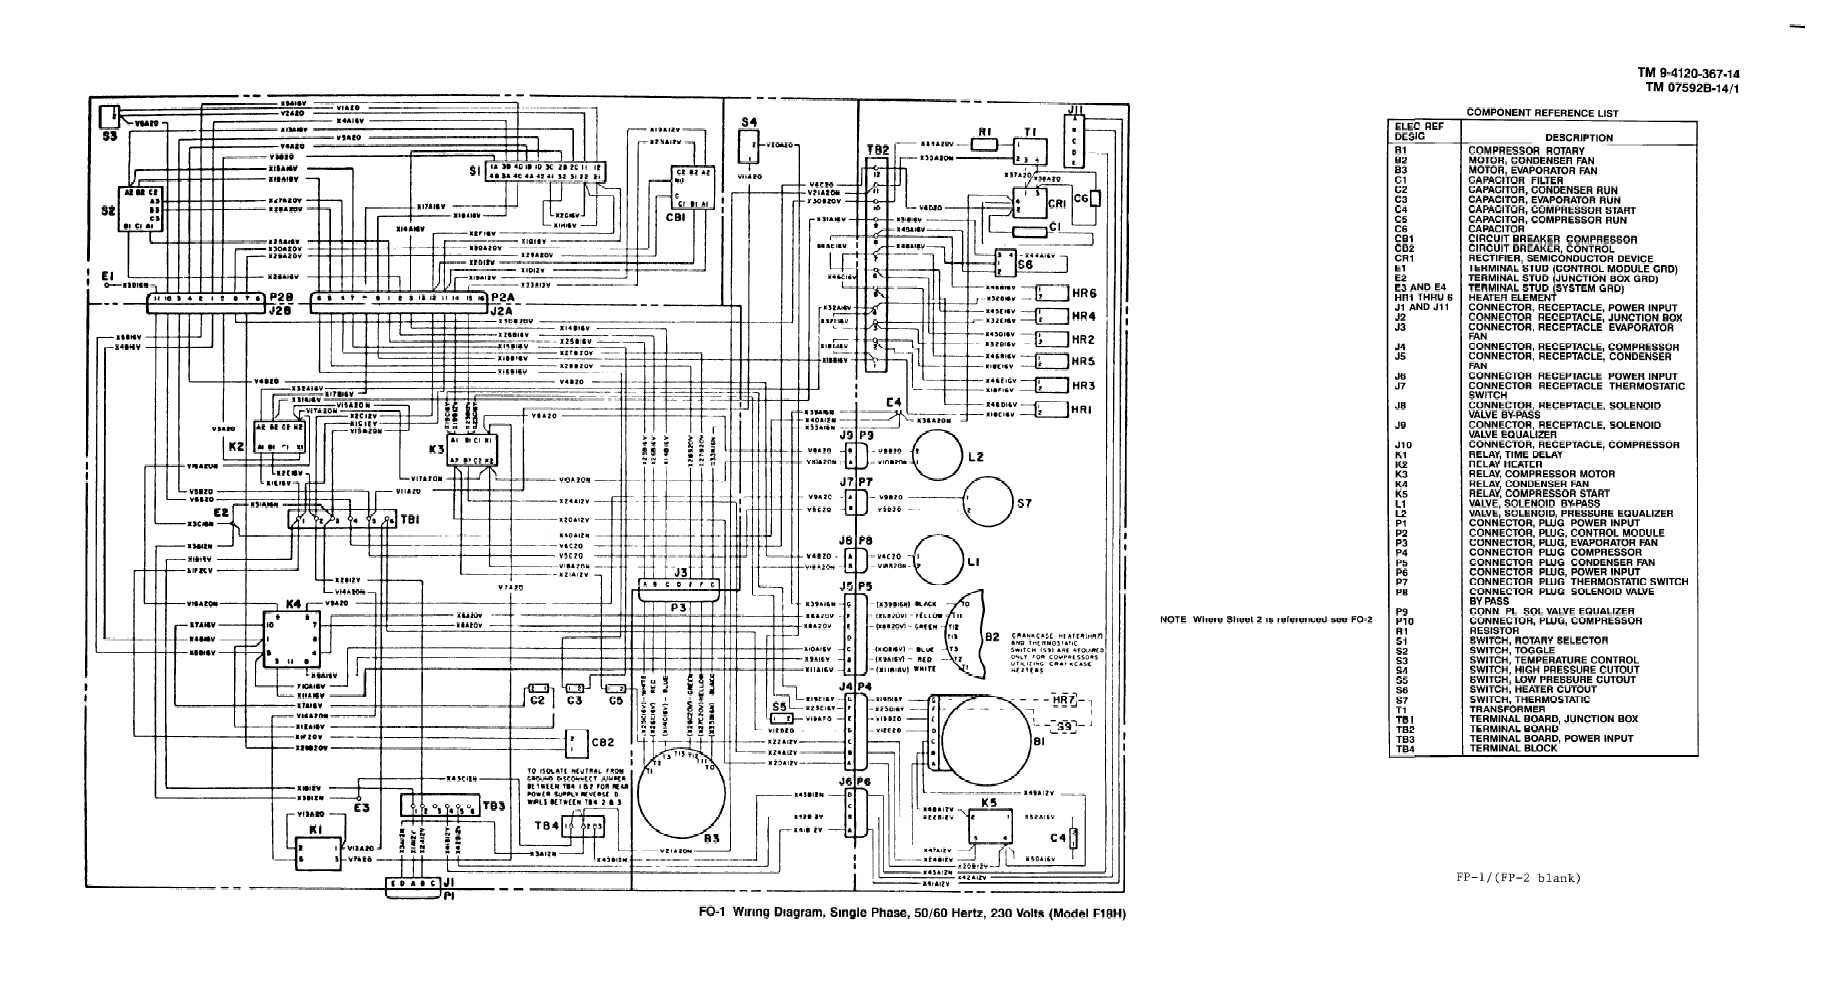 230 volt wiring diagram three states of matter for 1 phase motor get